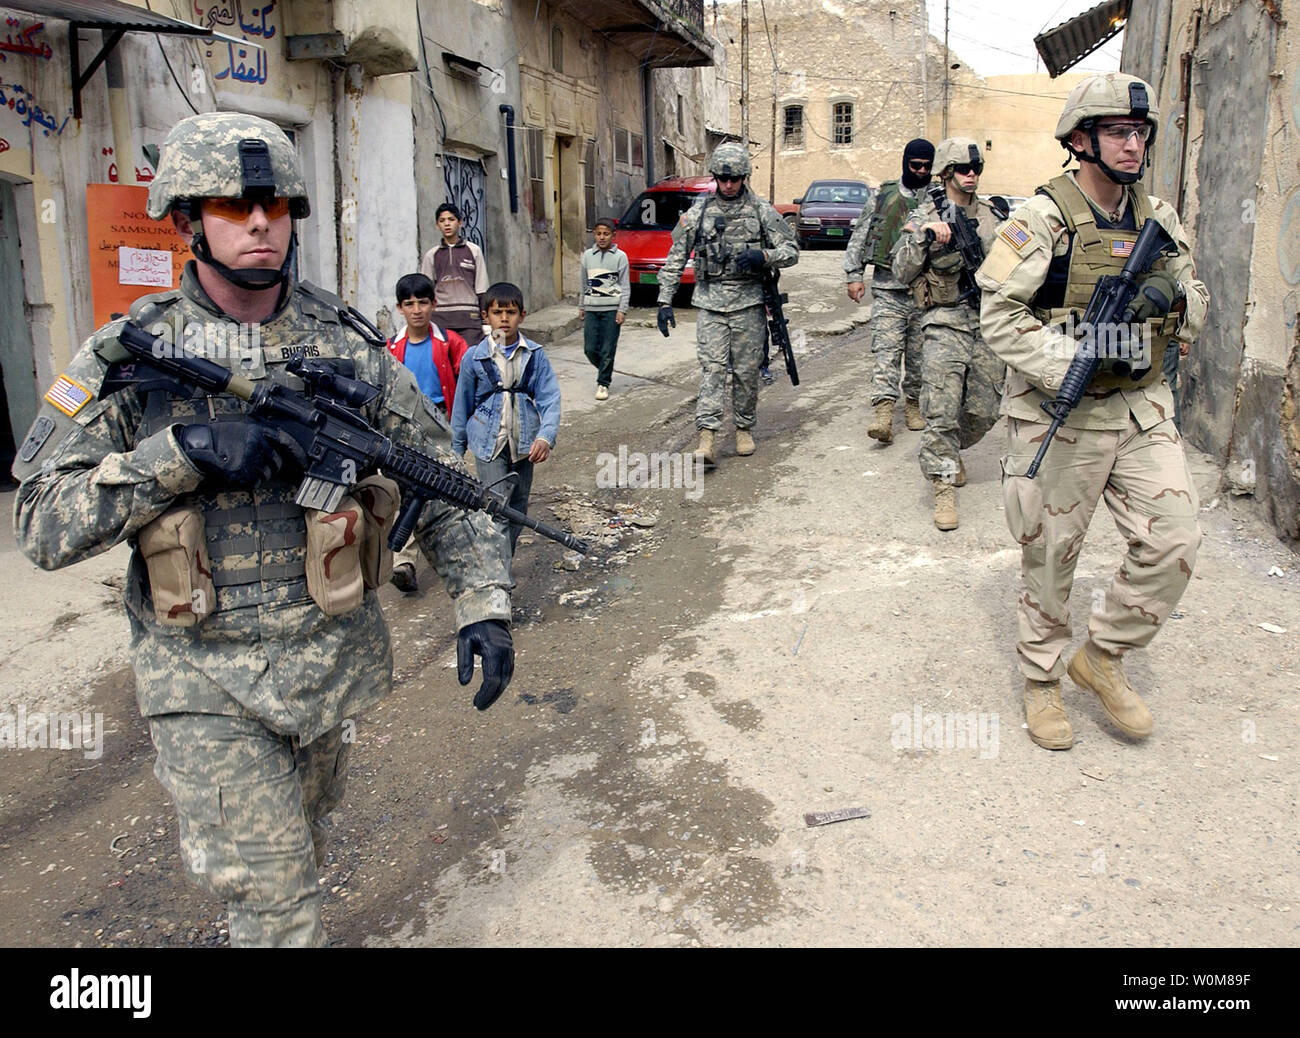 Soldiers from the U.S. Army's 2nd Battalion, 1st Infantry Regiment, 172nd Stryker Brigade patrol the streets of Tall Kayf, Iraq, on March 1, 2006.(UPI Photo/John M. Foster/USAF) - Stock Image